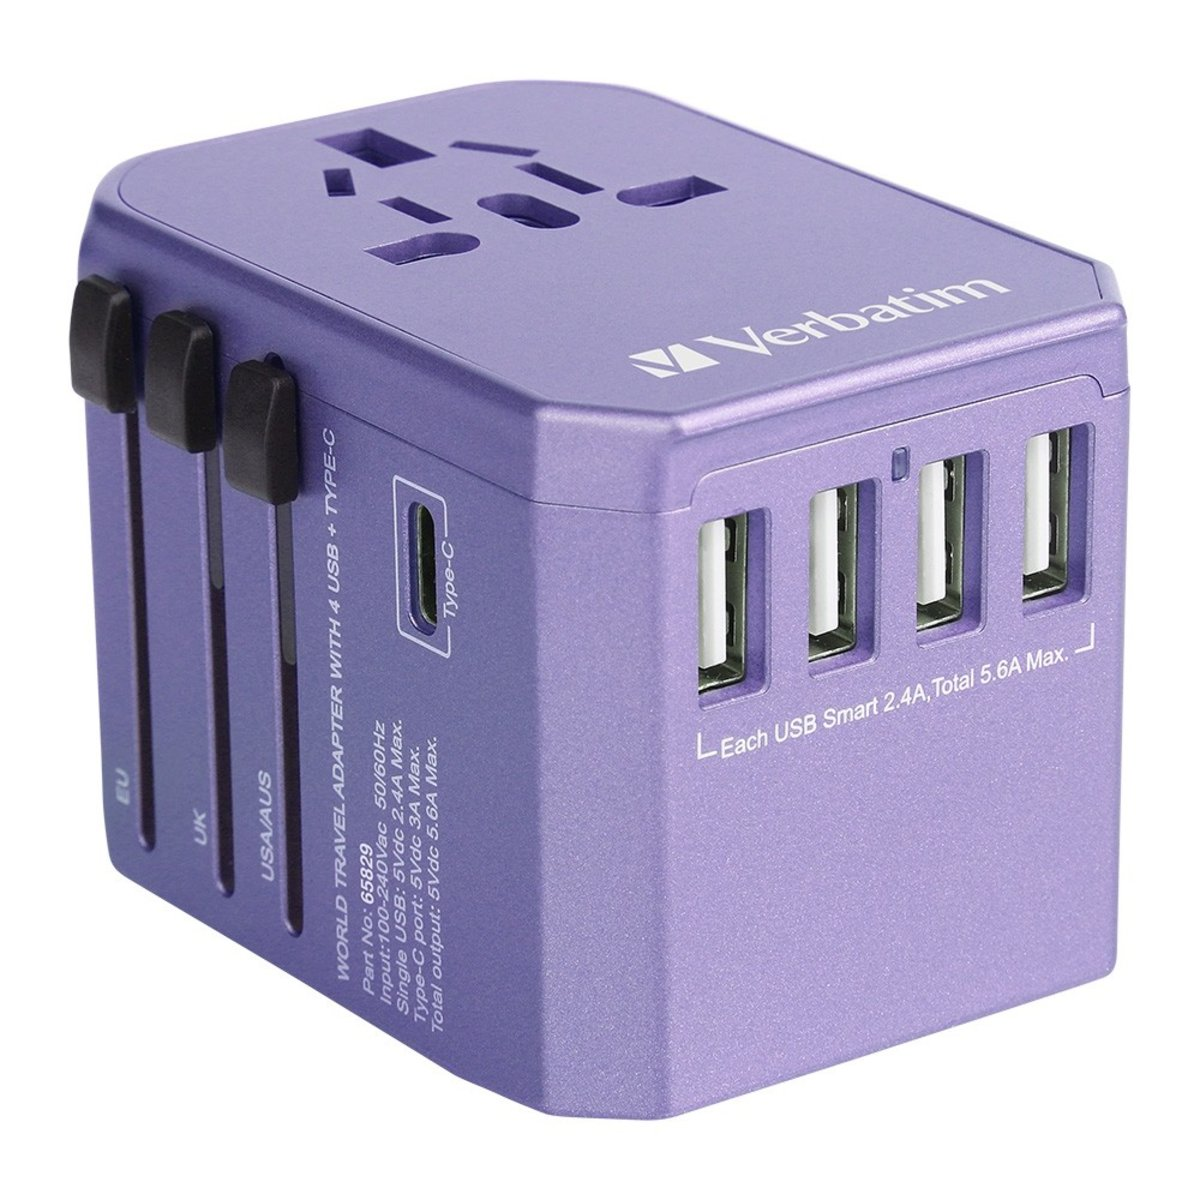 5 Ports Universal Travel Adapter 4 USB Type C 5.6A Charger- Purple